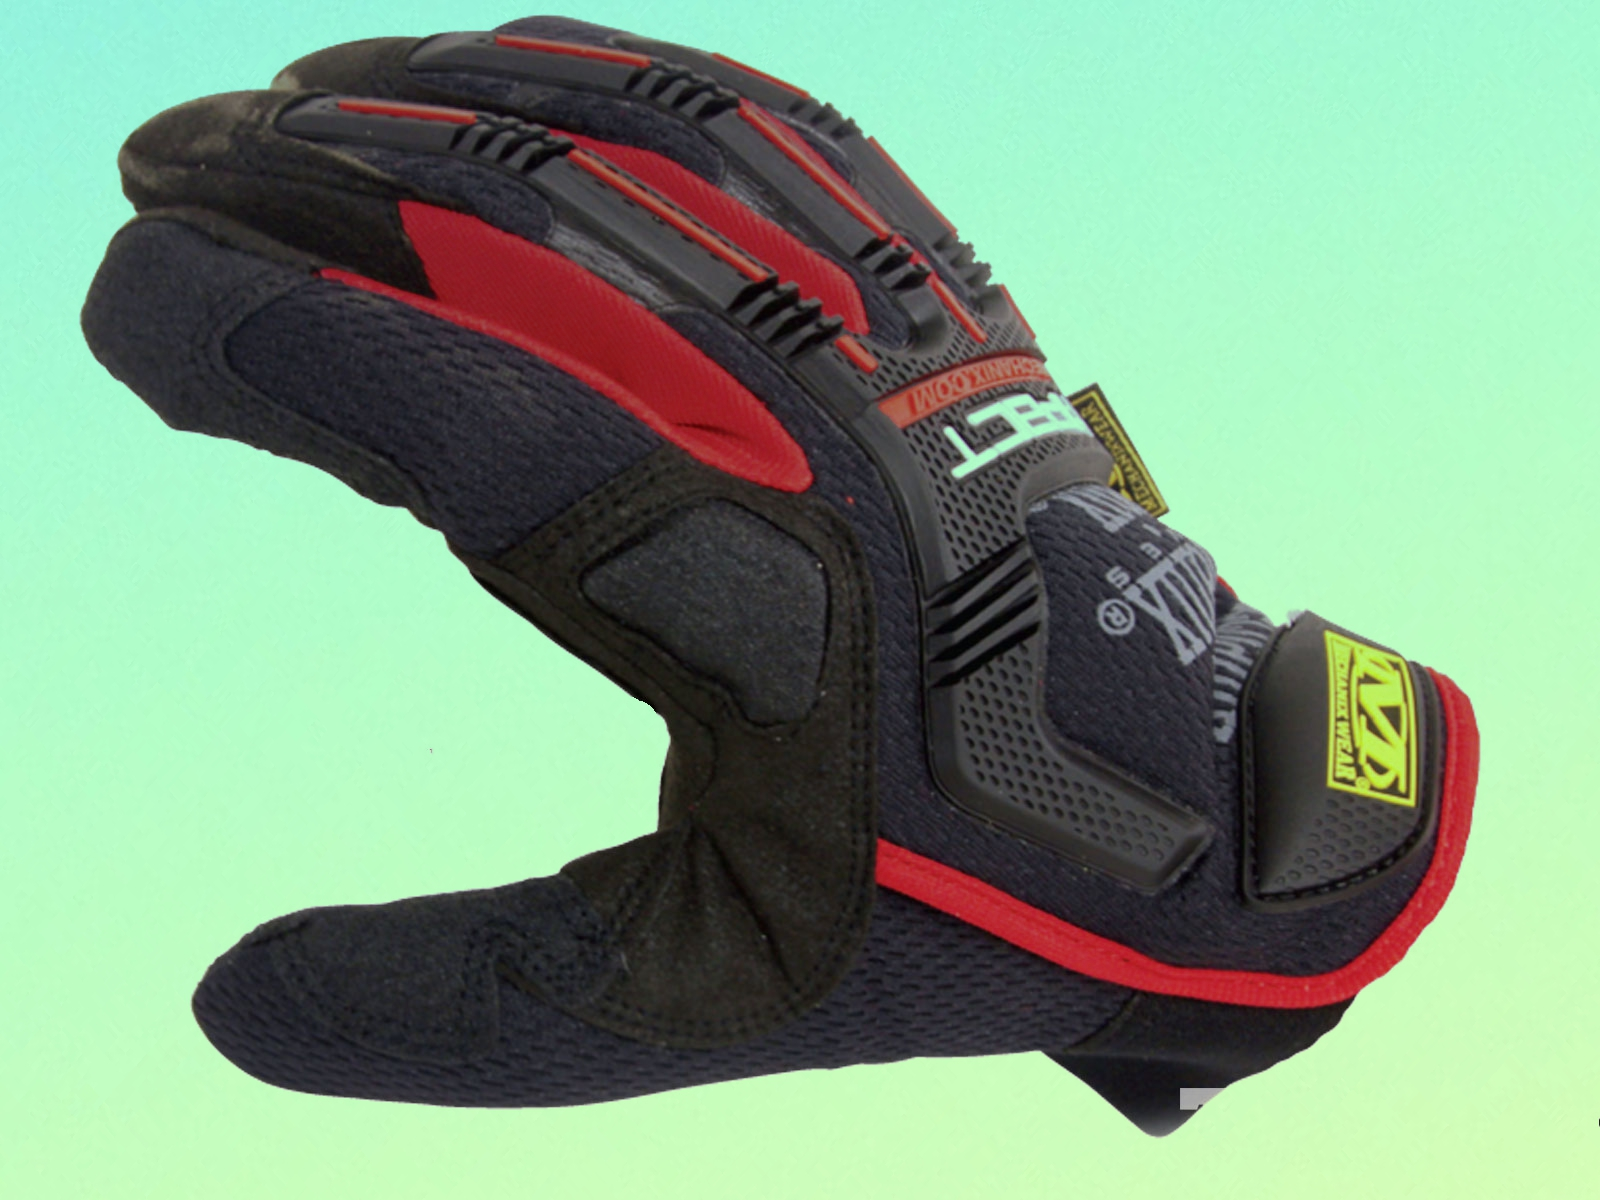 Motorcycle gloves guide - Ten Best Motorcycle Gloves 2017 Guide